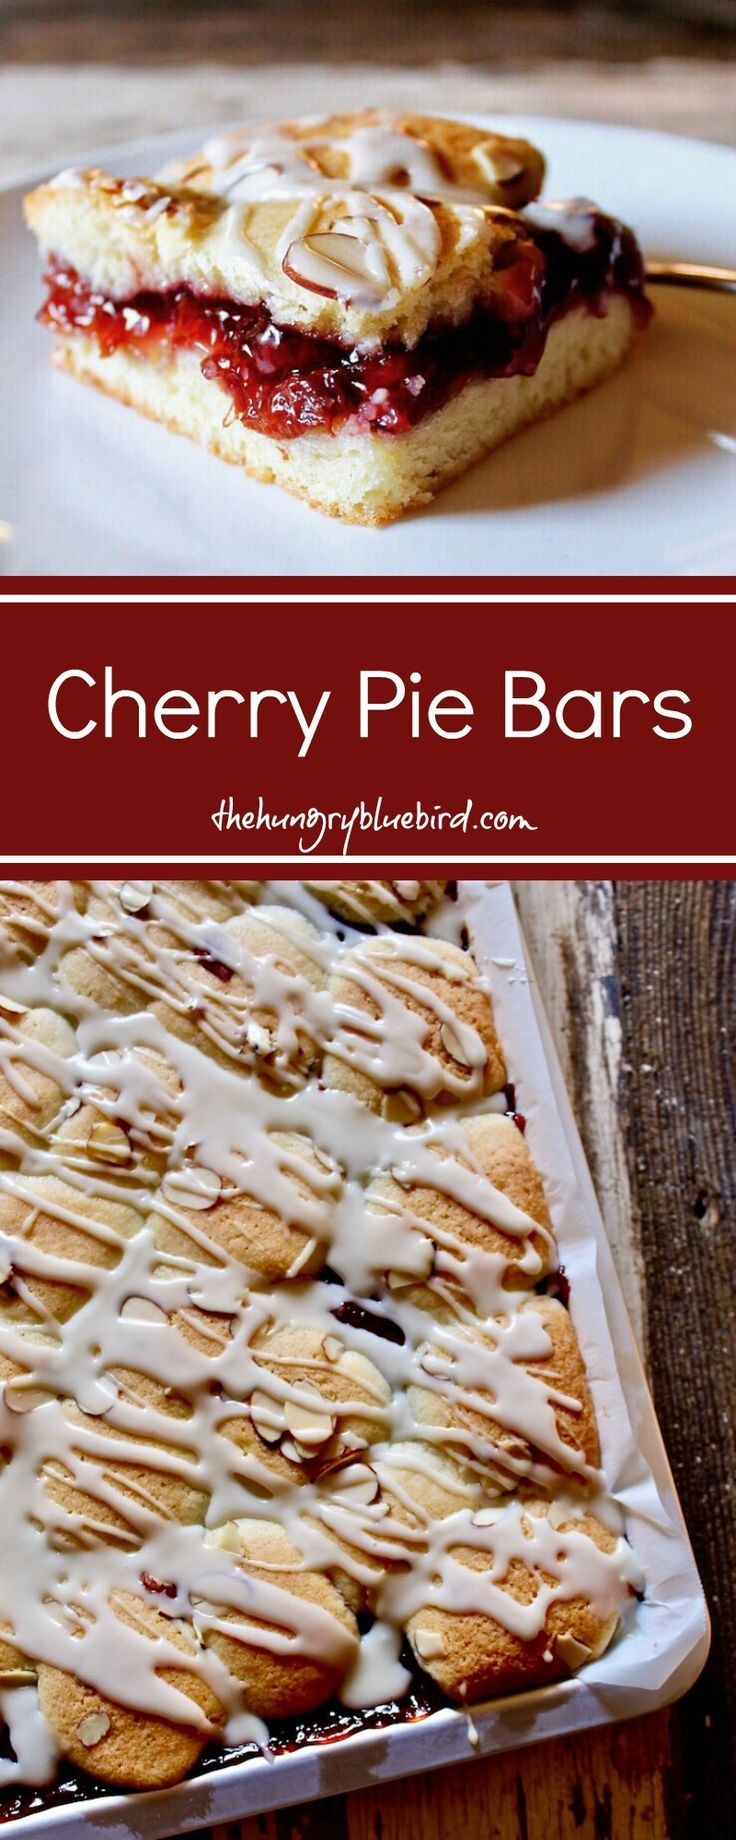 Cherry Pie Bars, easy to make with staple ingredients, festive for the holidays.